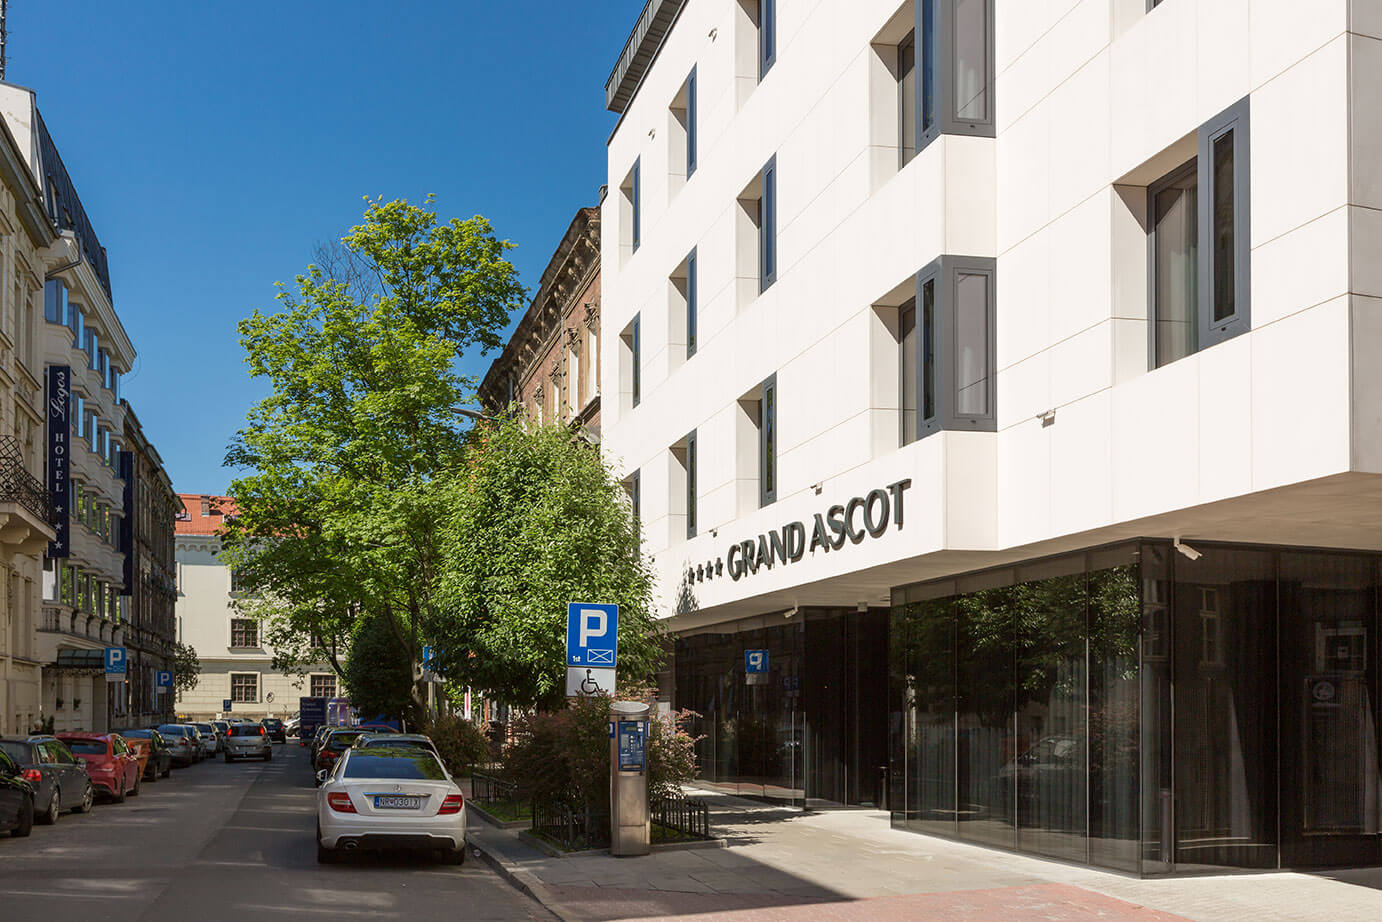 Grand Ascot Hotel - a boutique hotel in the center of Cracow